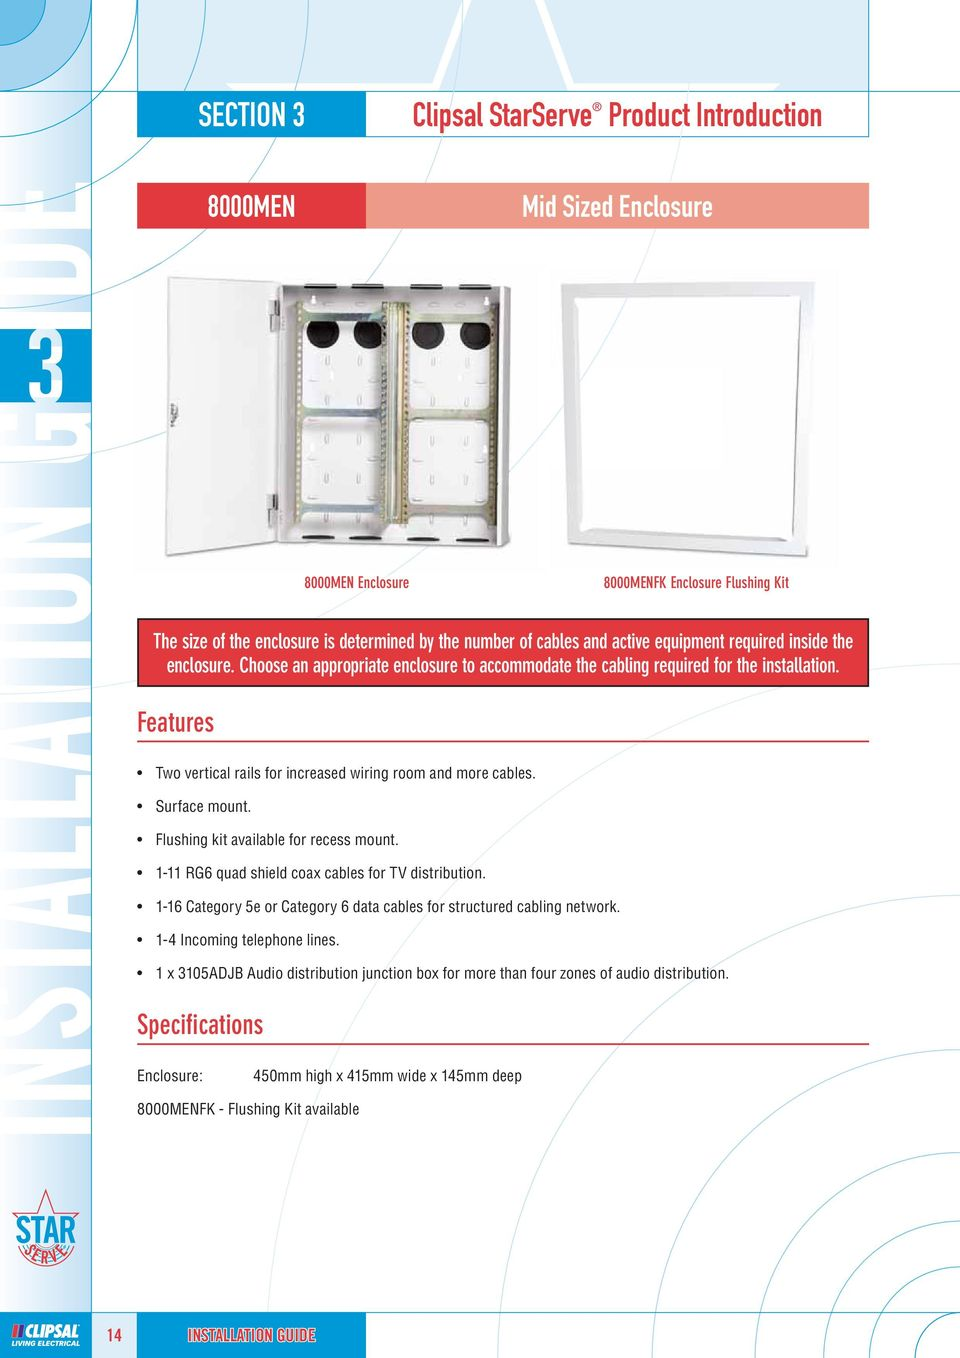 Home Networking Solutions Pdf Recessed Structured Wiring Box Features Two Vertical Rails For Increased Room And More Cables Surface Mount Flushing